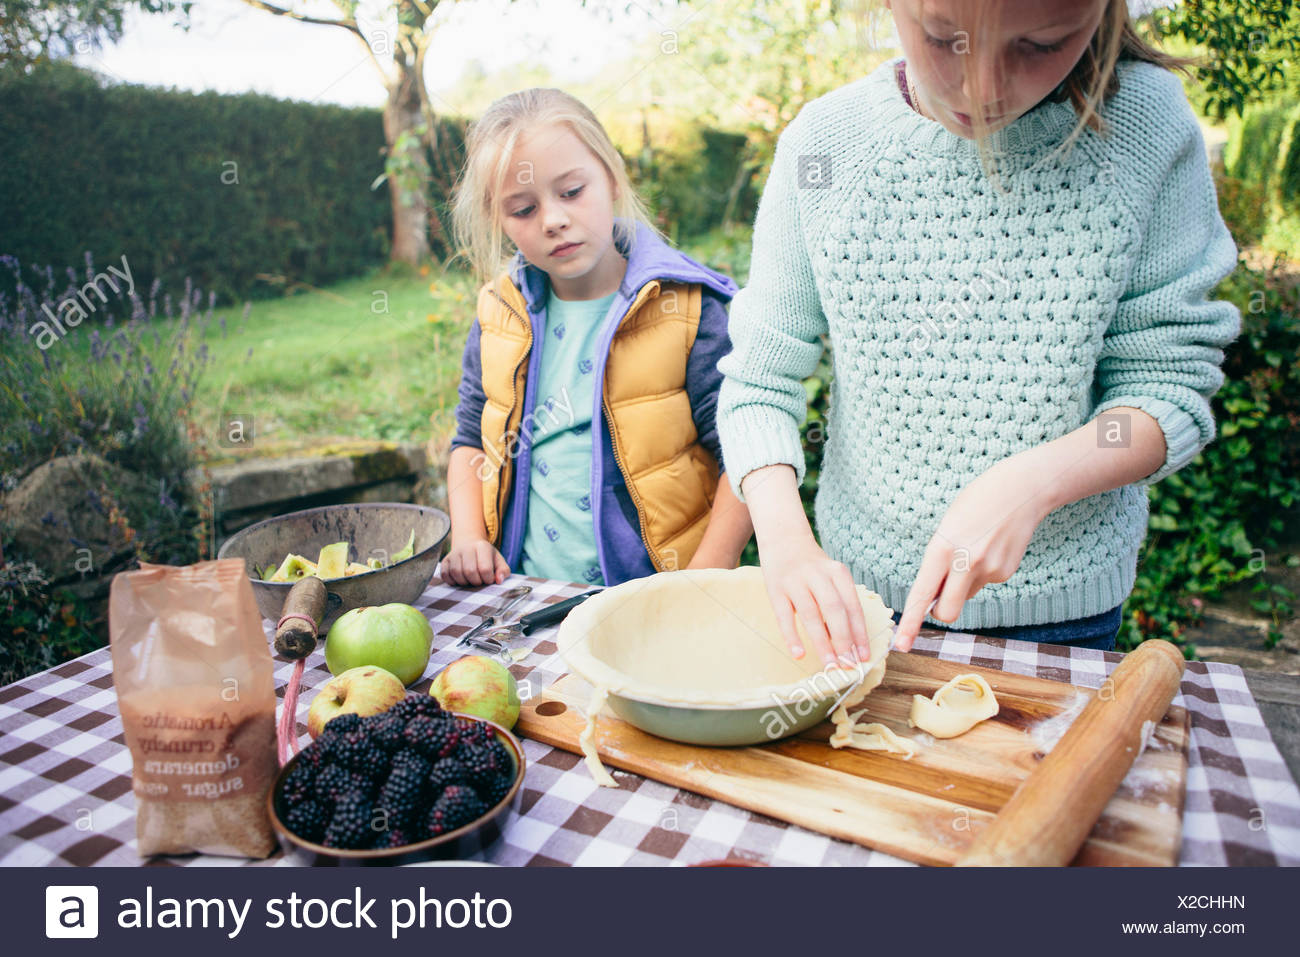 Two girls making a pie - Stock Image